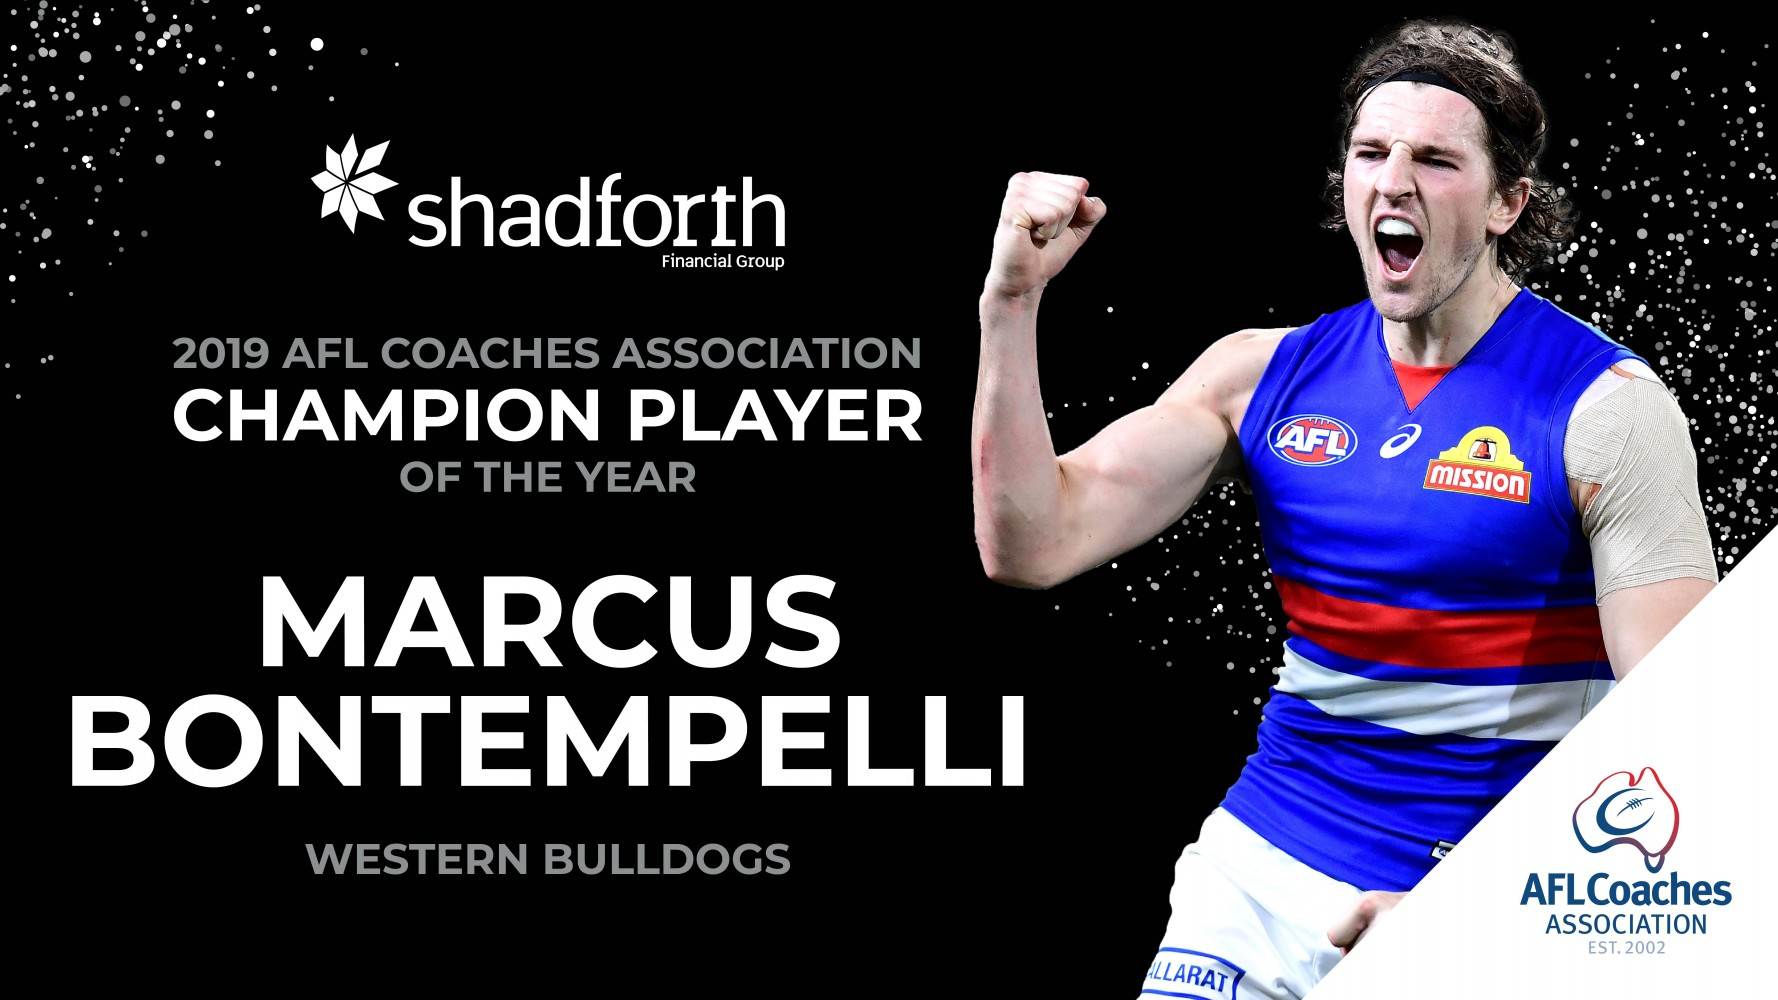 Shadforth Financial Group AFLCA Champion Player of the Year